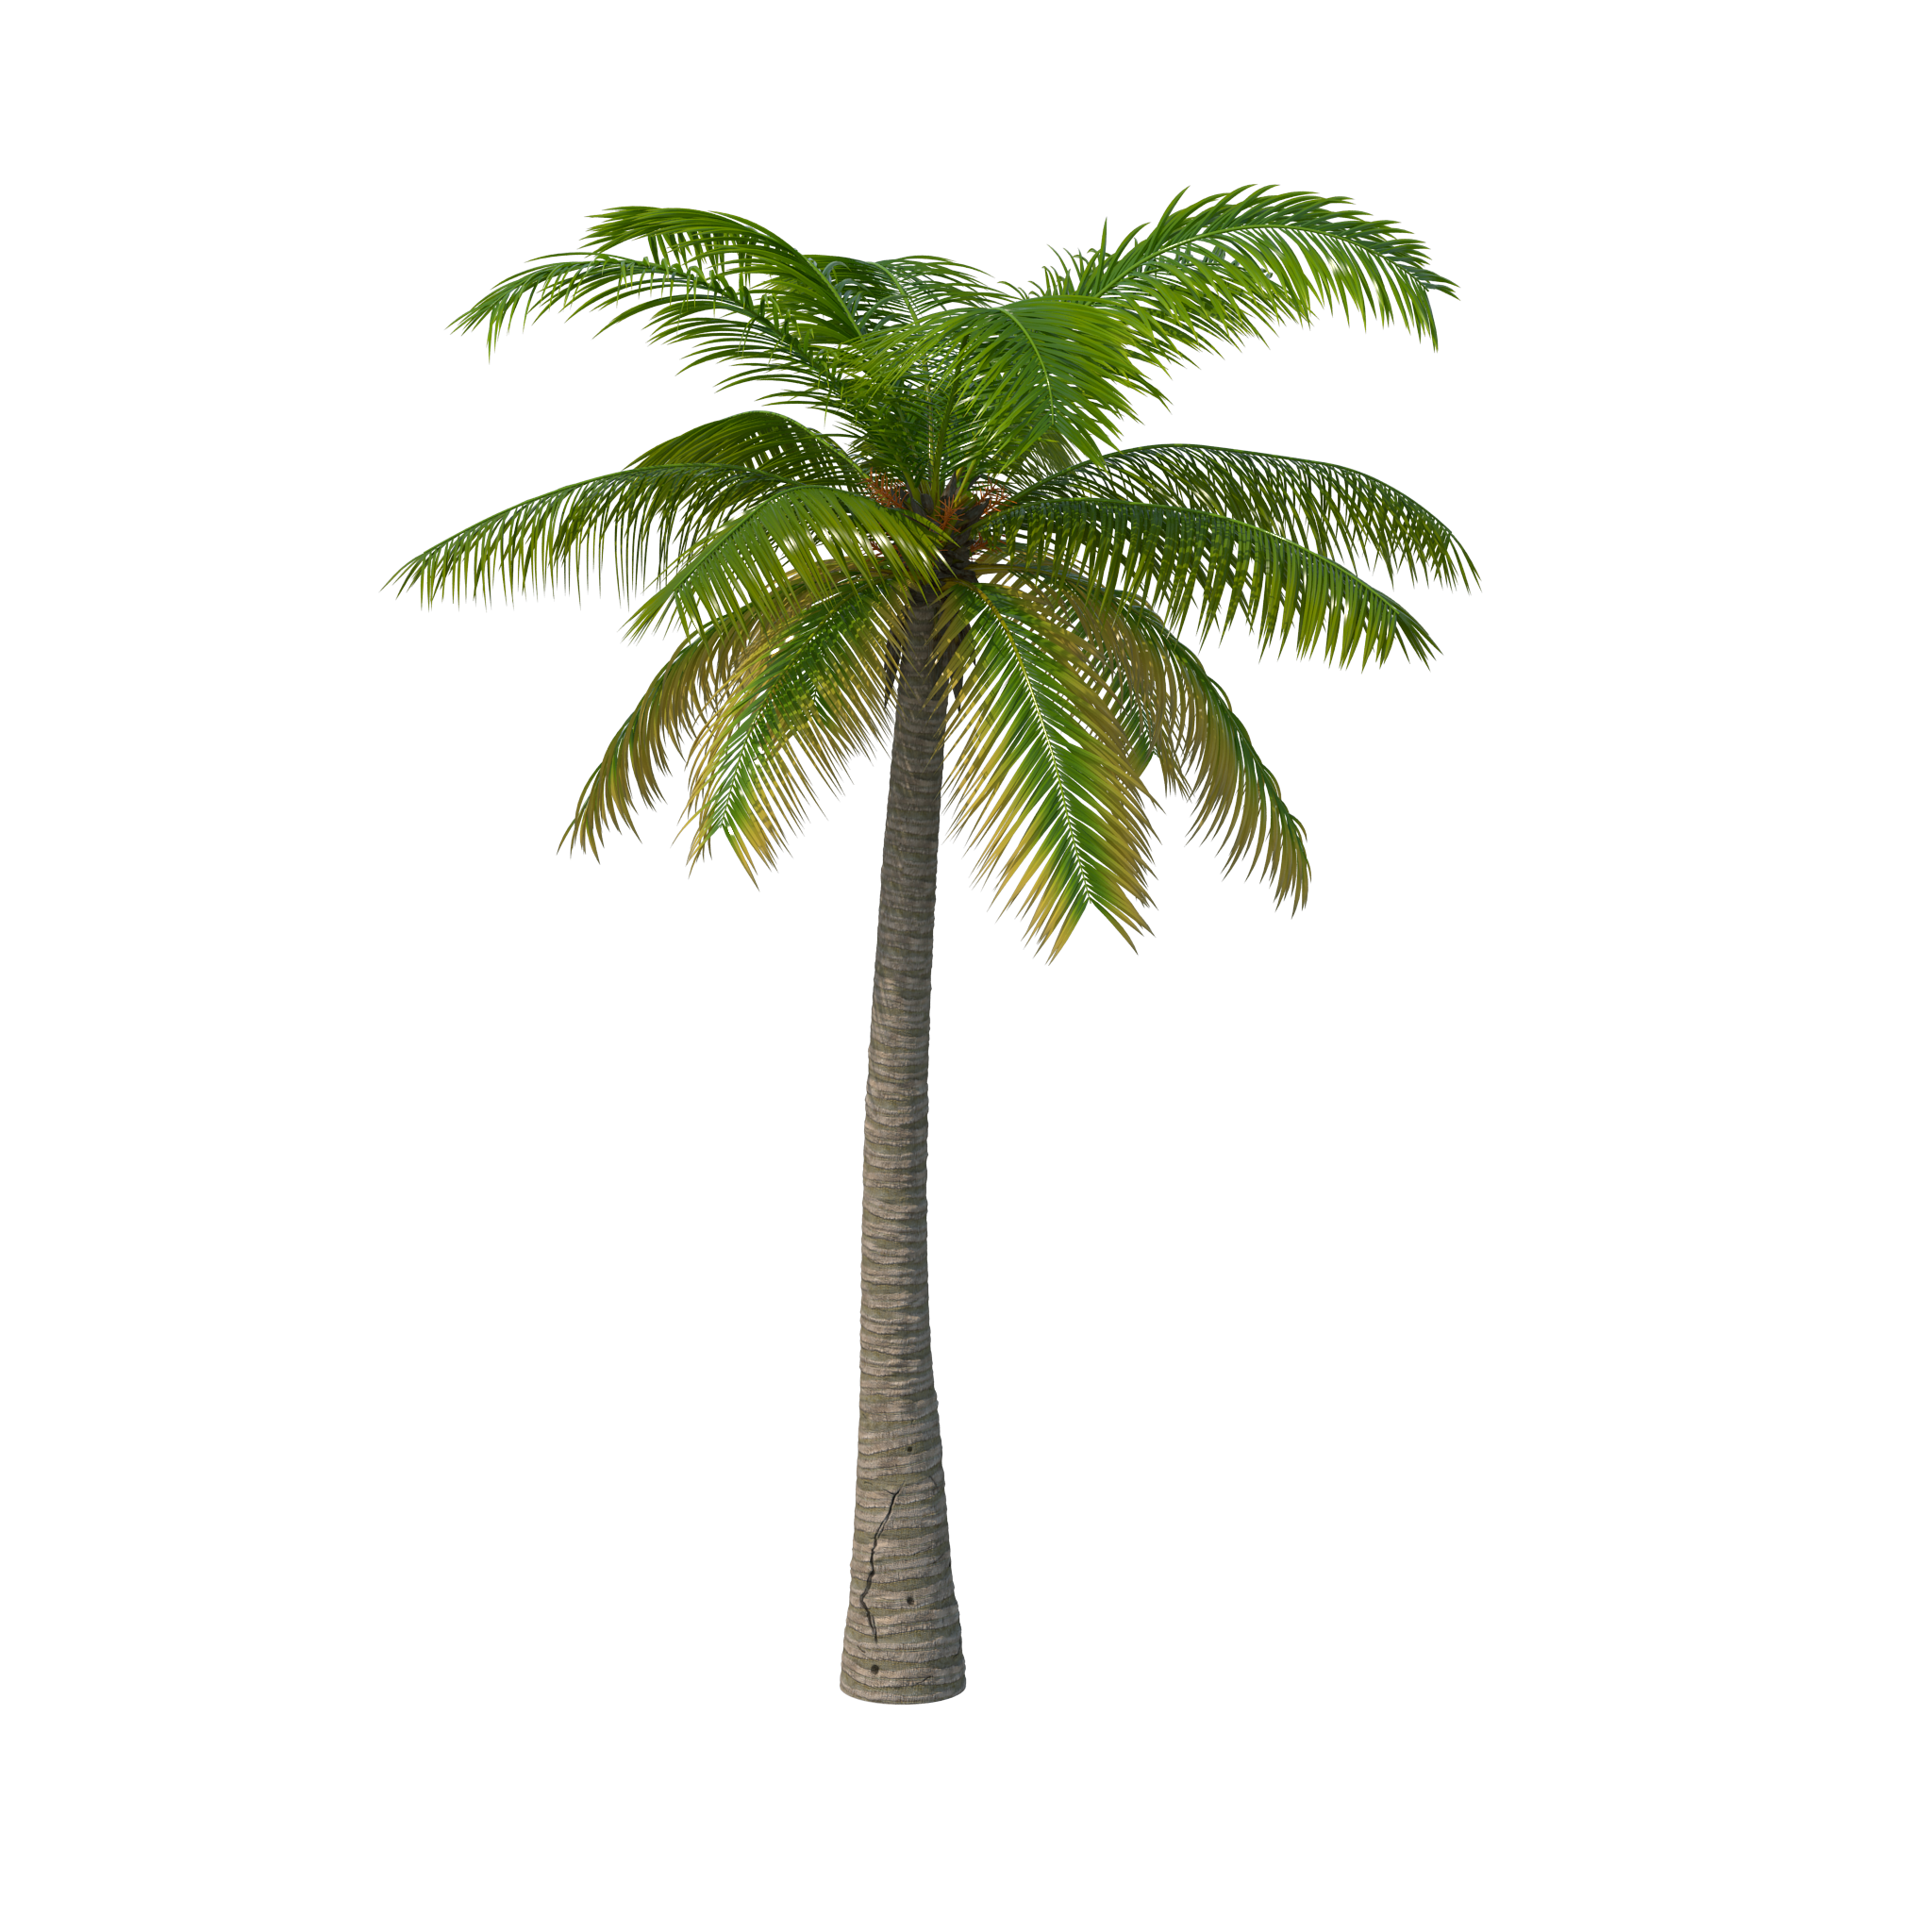 Palm tree png images. Image purepng free transparent